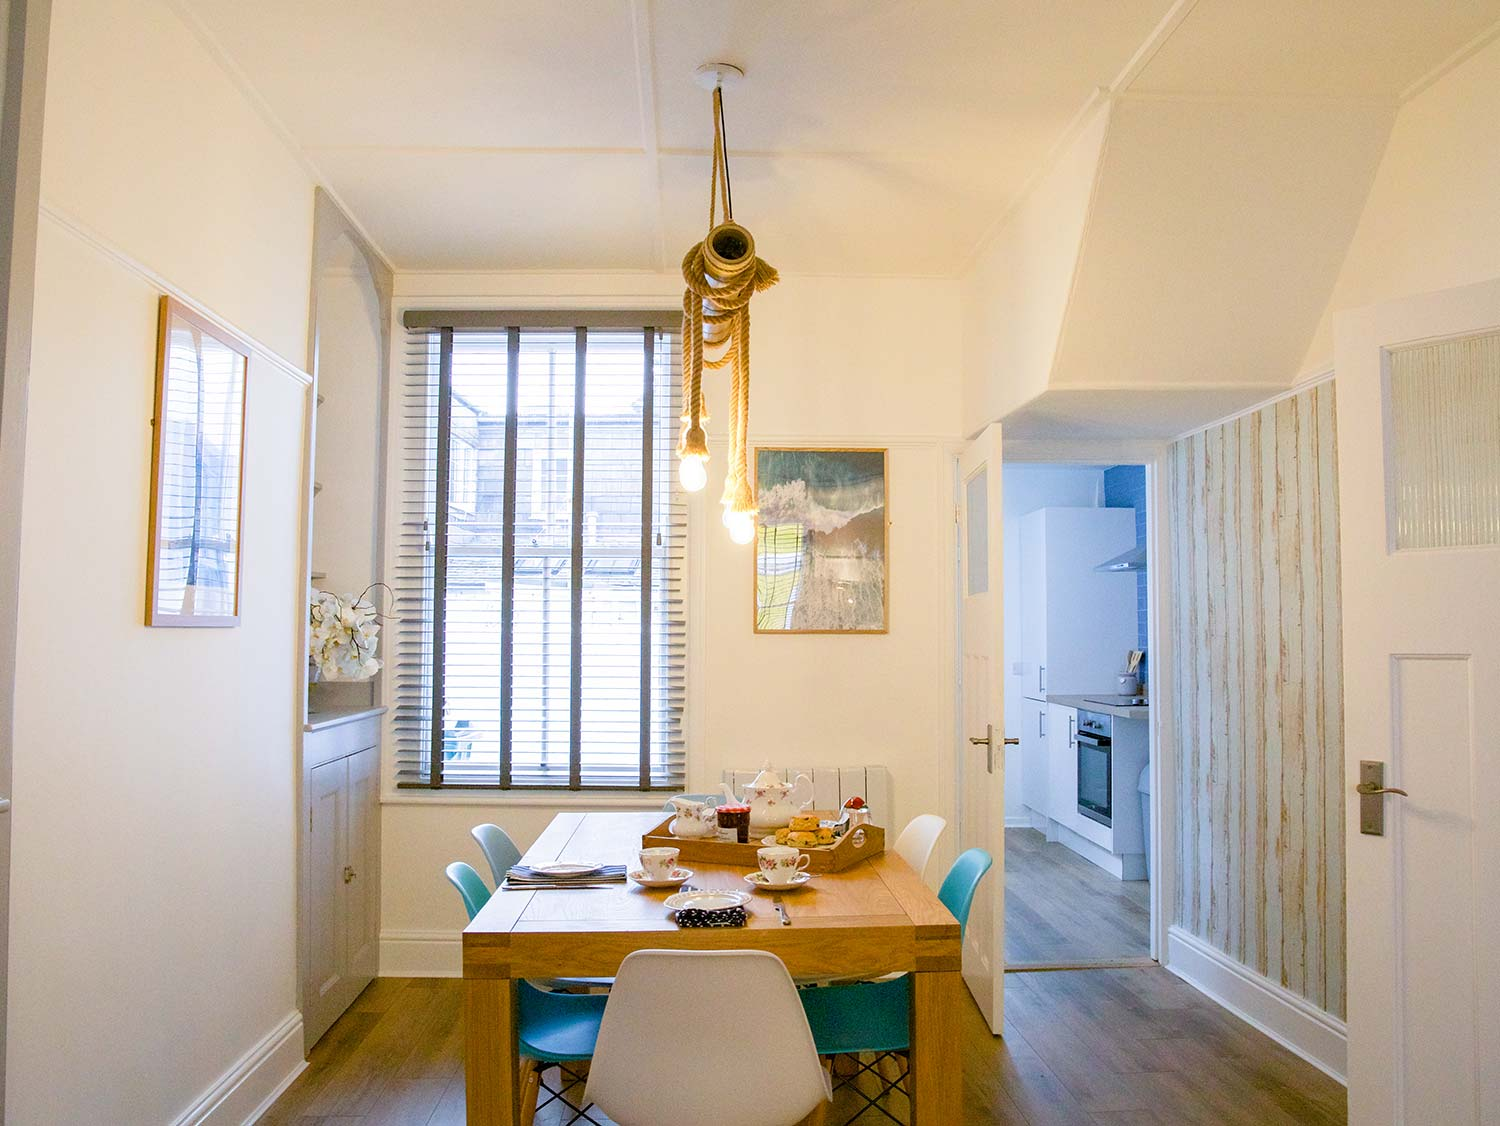 Dining Area at Slipway Cottage seating up to 6 people